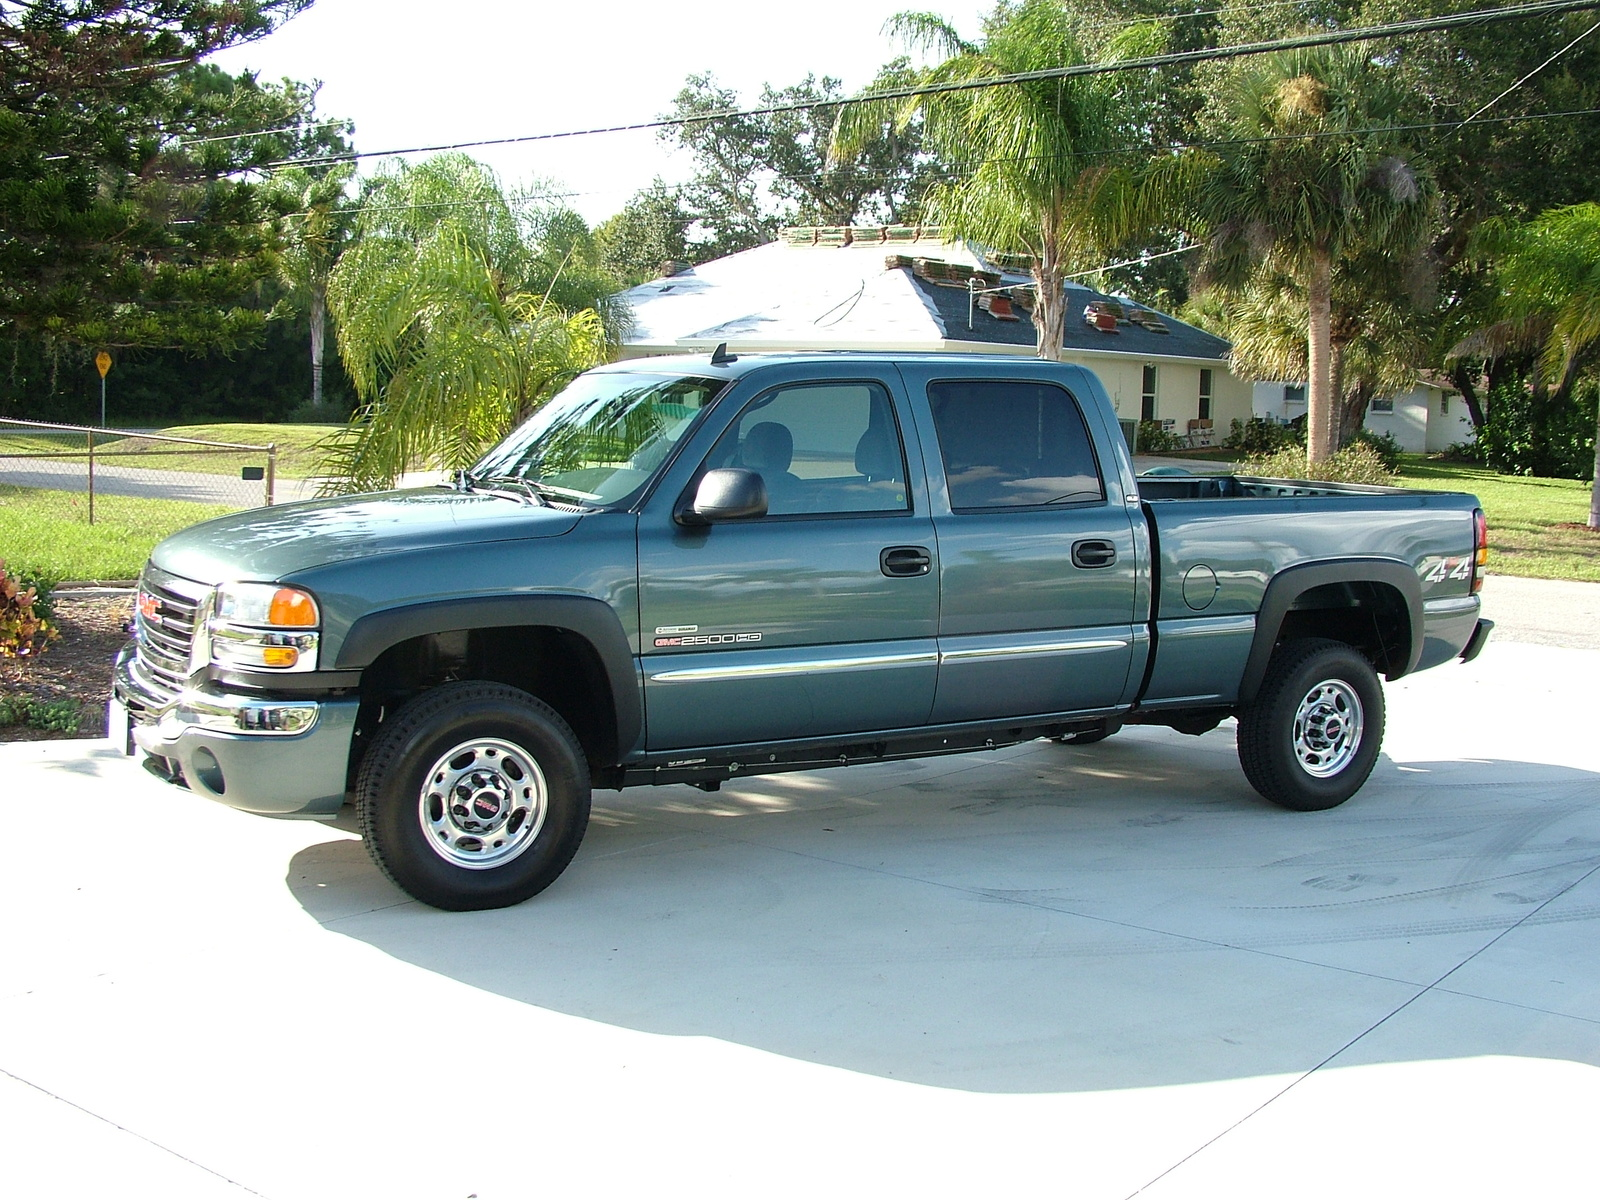 2007 GMC Sierra 2500HD Classic 4 Dr SLT Crew Cab 4WD picture, exterior